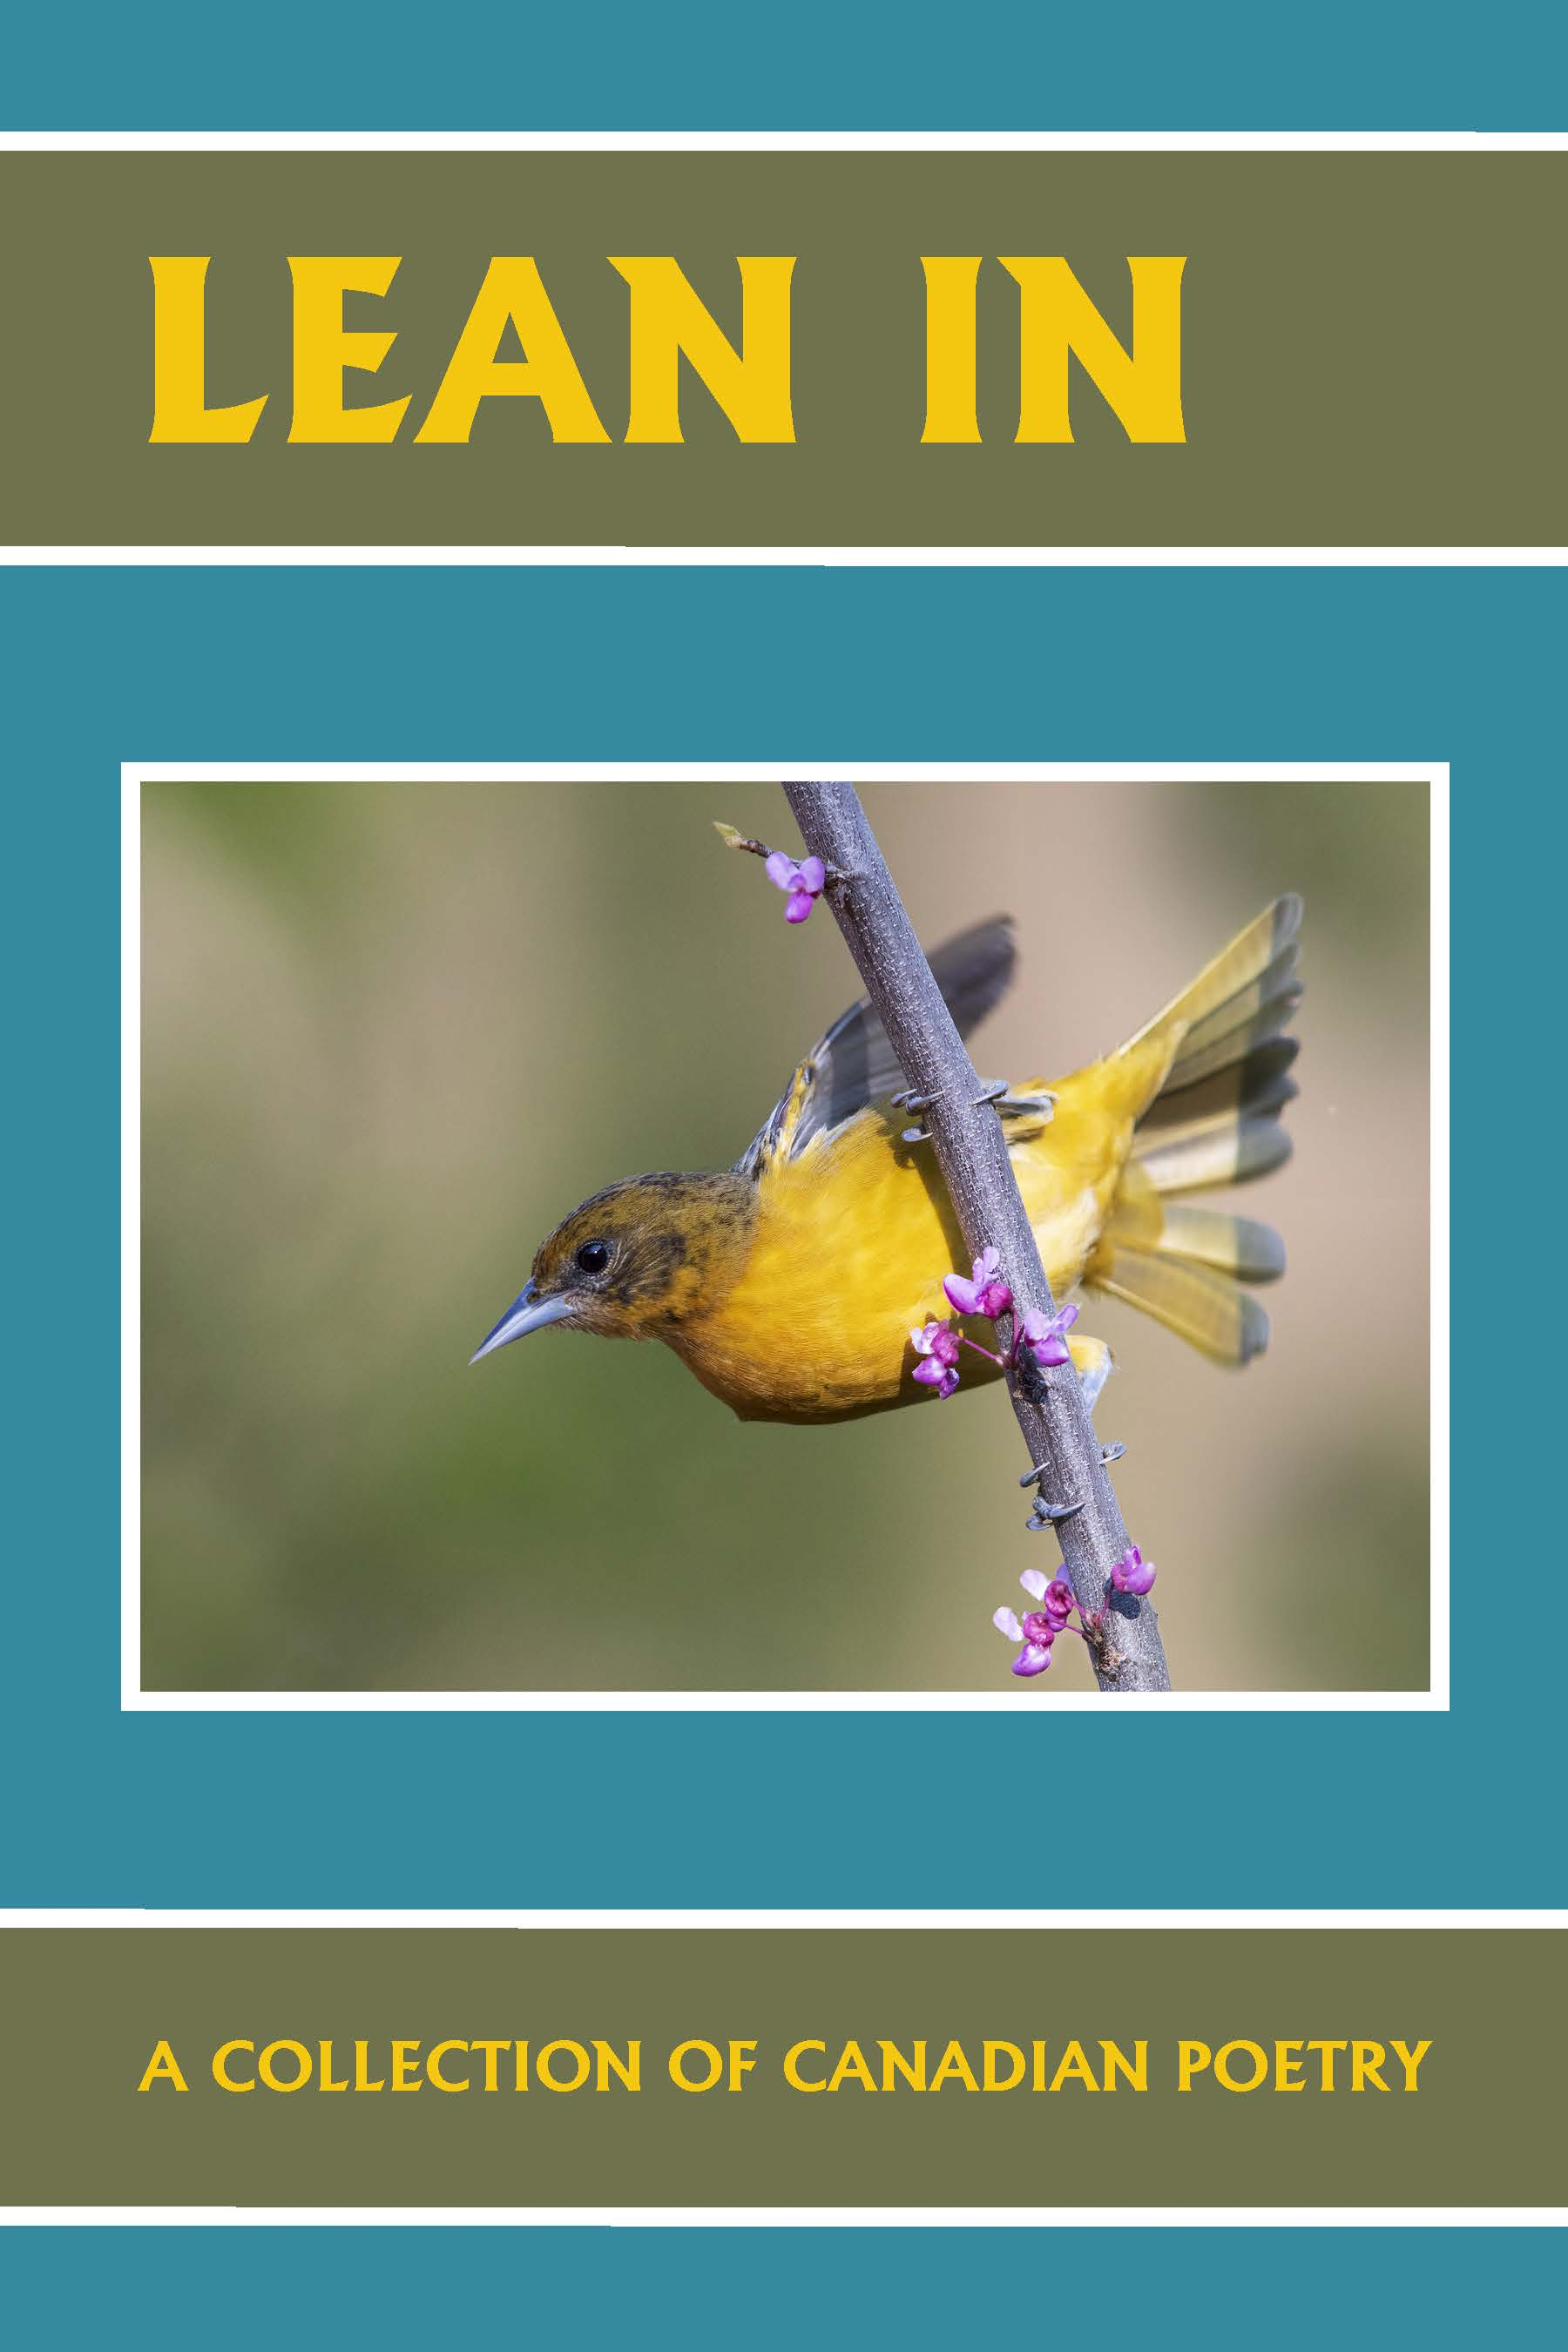 Lean In Summer 2018 Poetry Collection